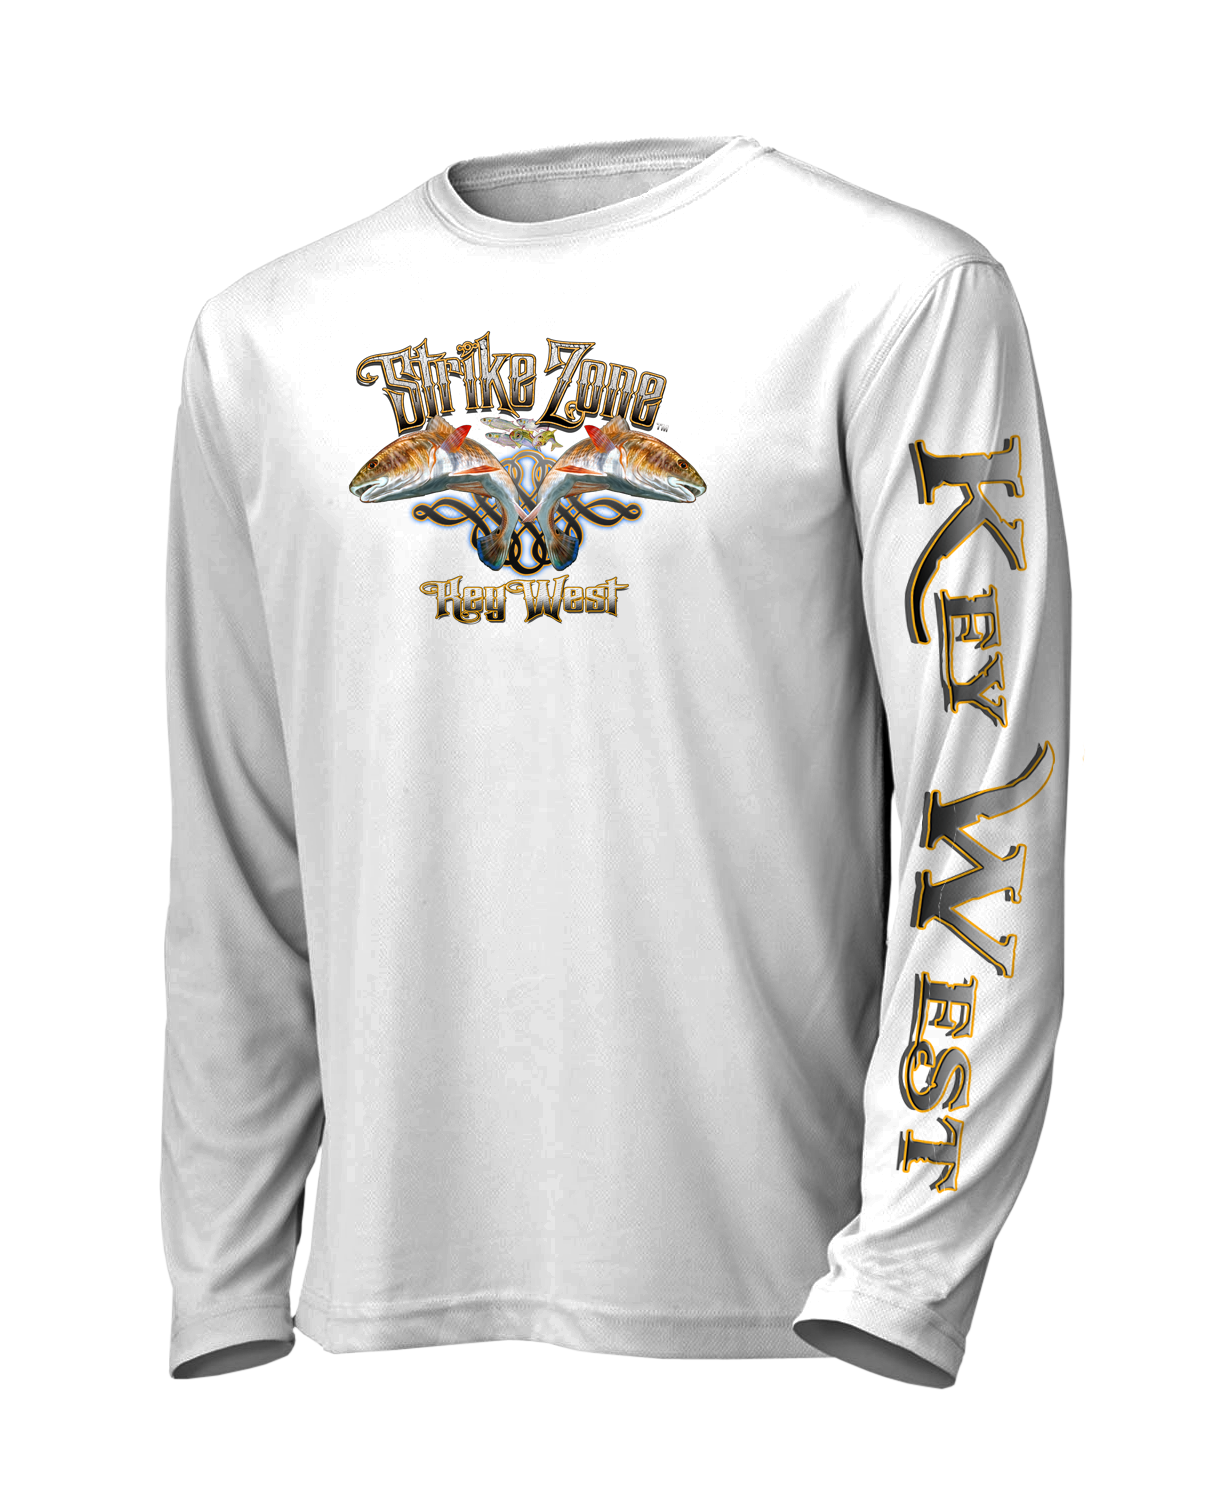 jason-mathias-strike-zone-inshore-slam-fishing-shirt-white-front.png